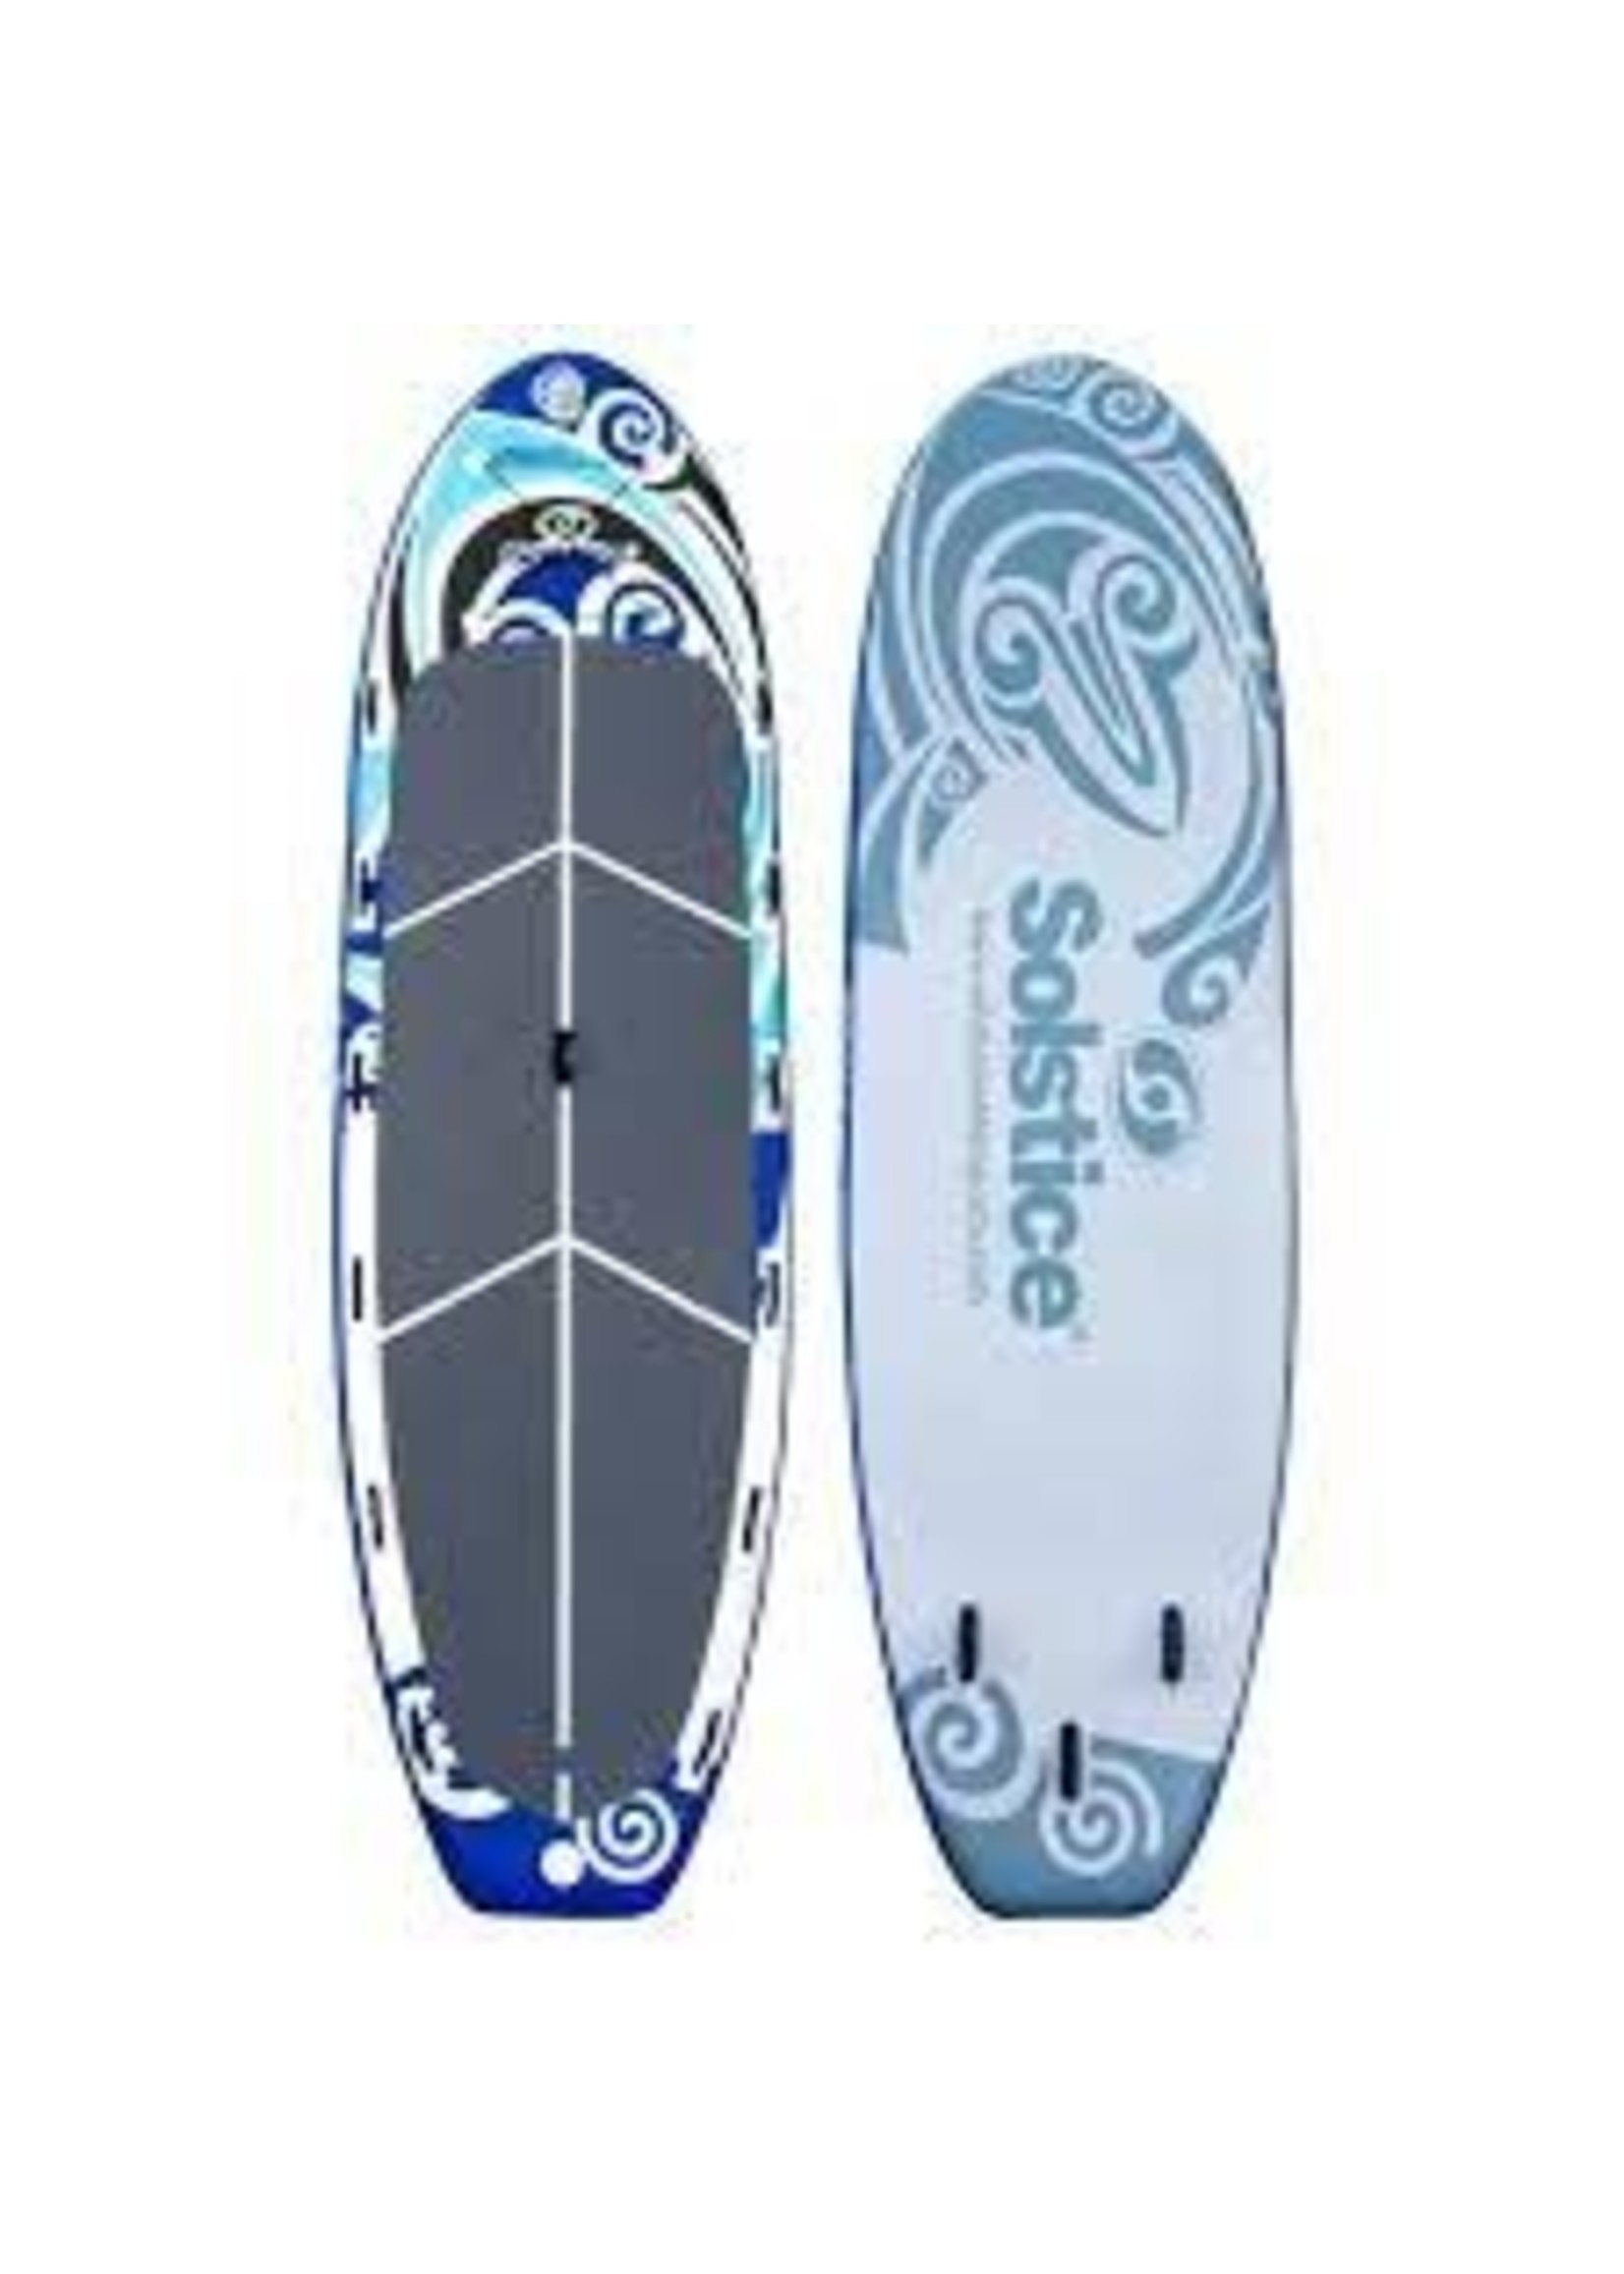 Solstice Solstice Maori 16' Giant Inflateable SUP